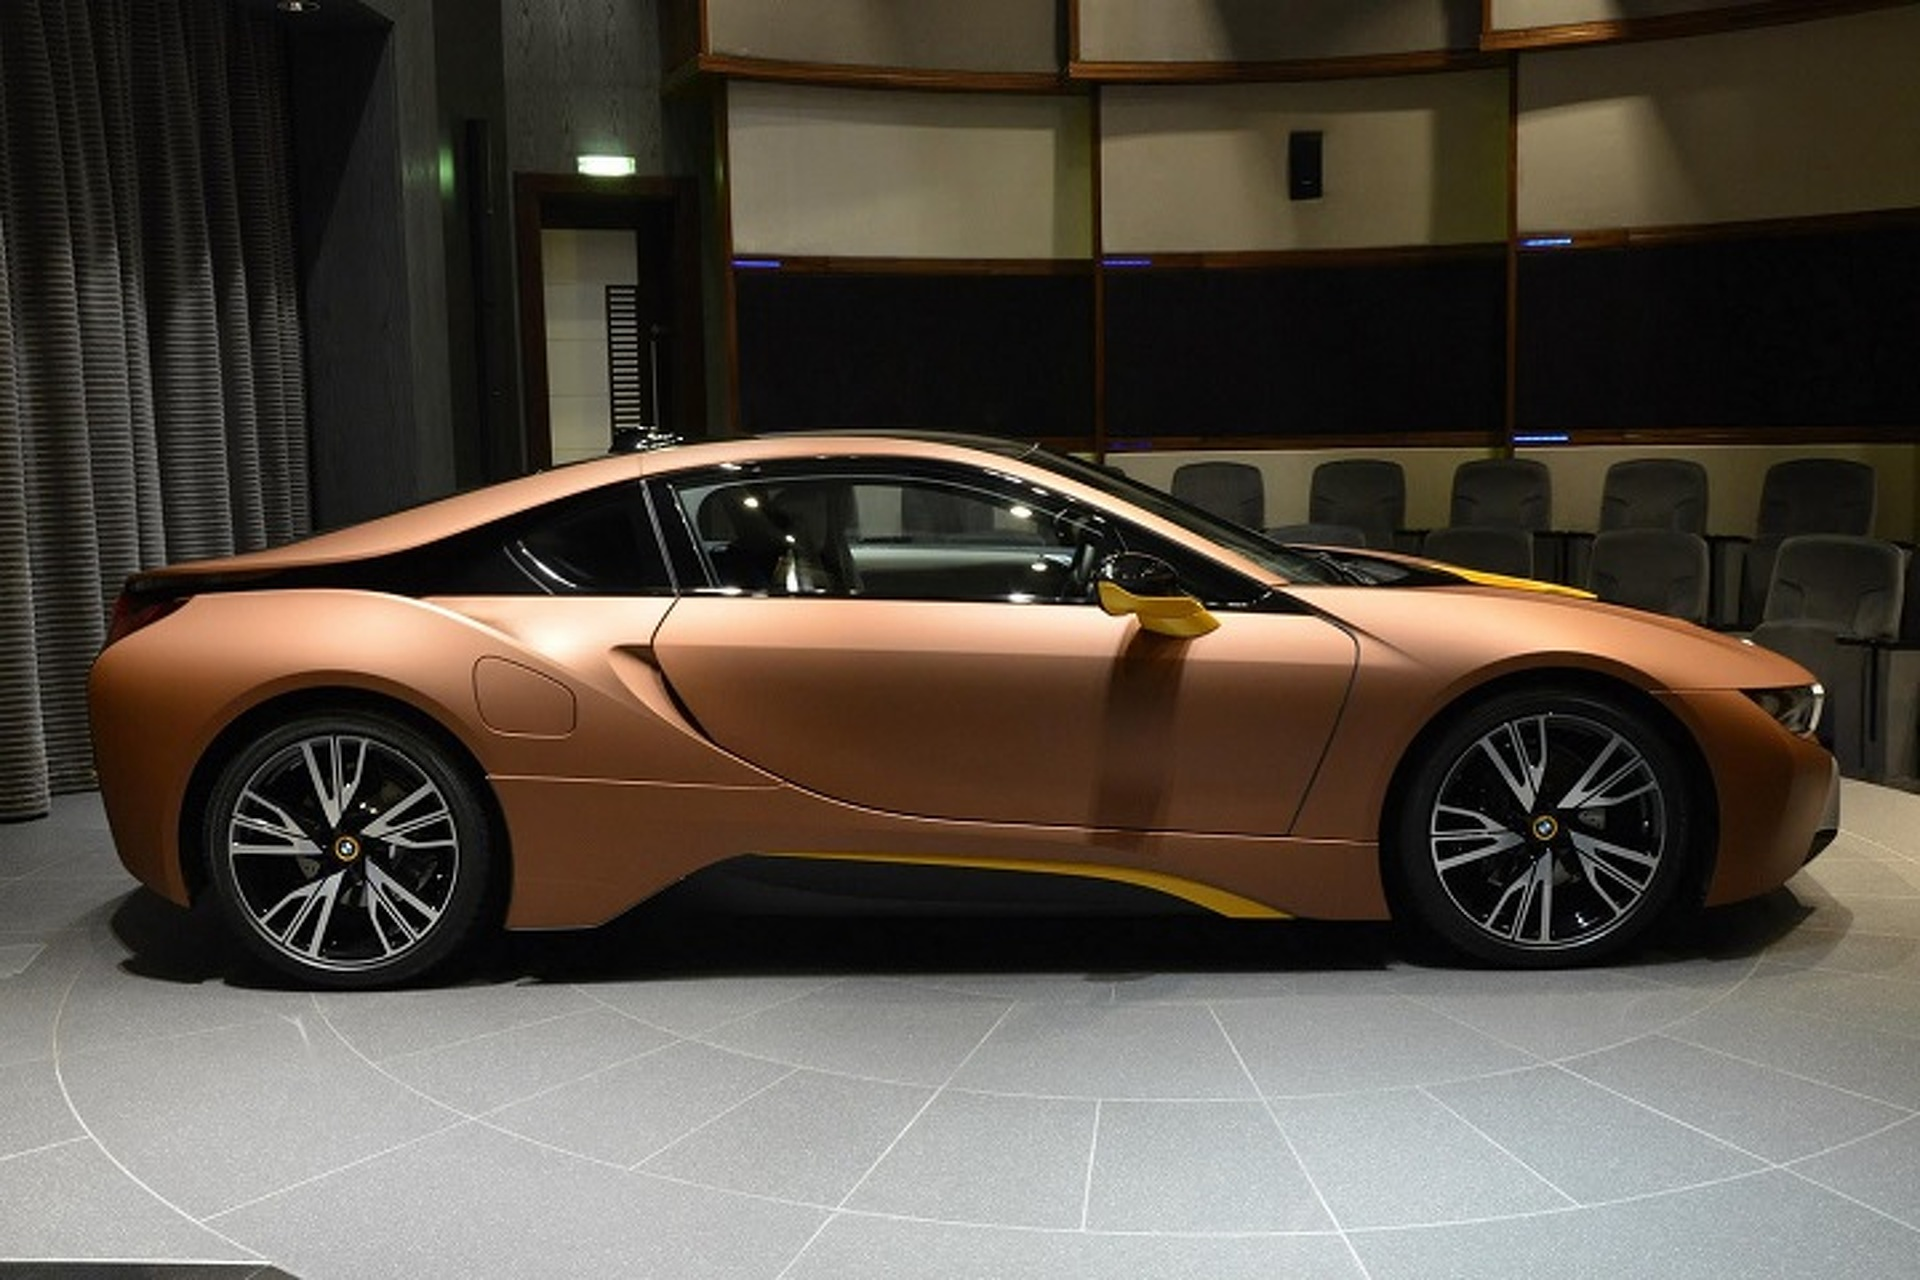 What Do You Think of This Brown and Yellow BMW i8?